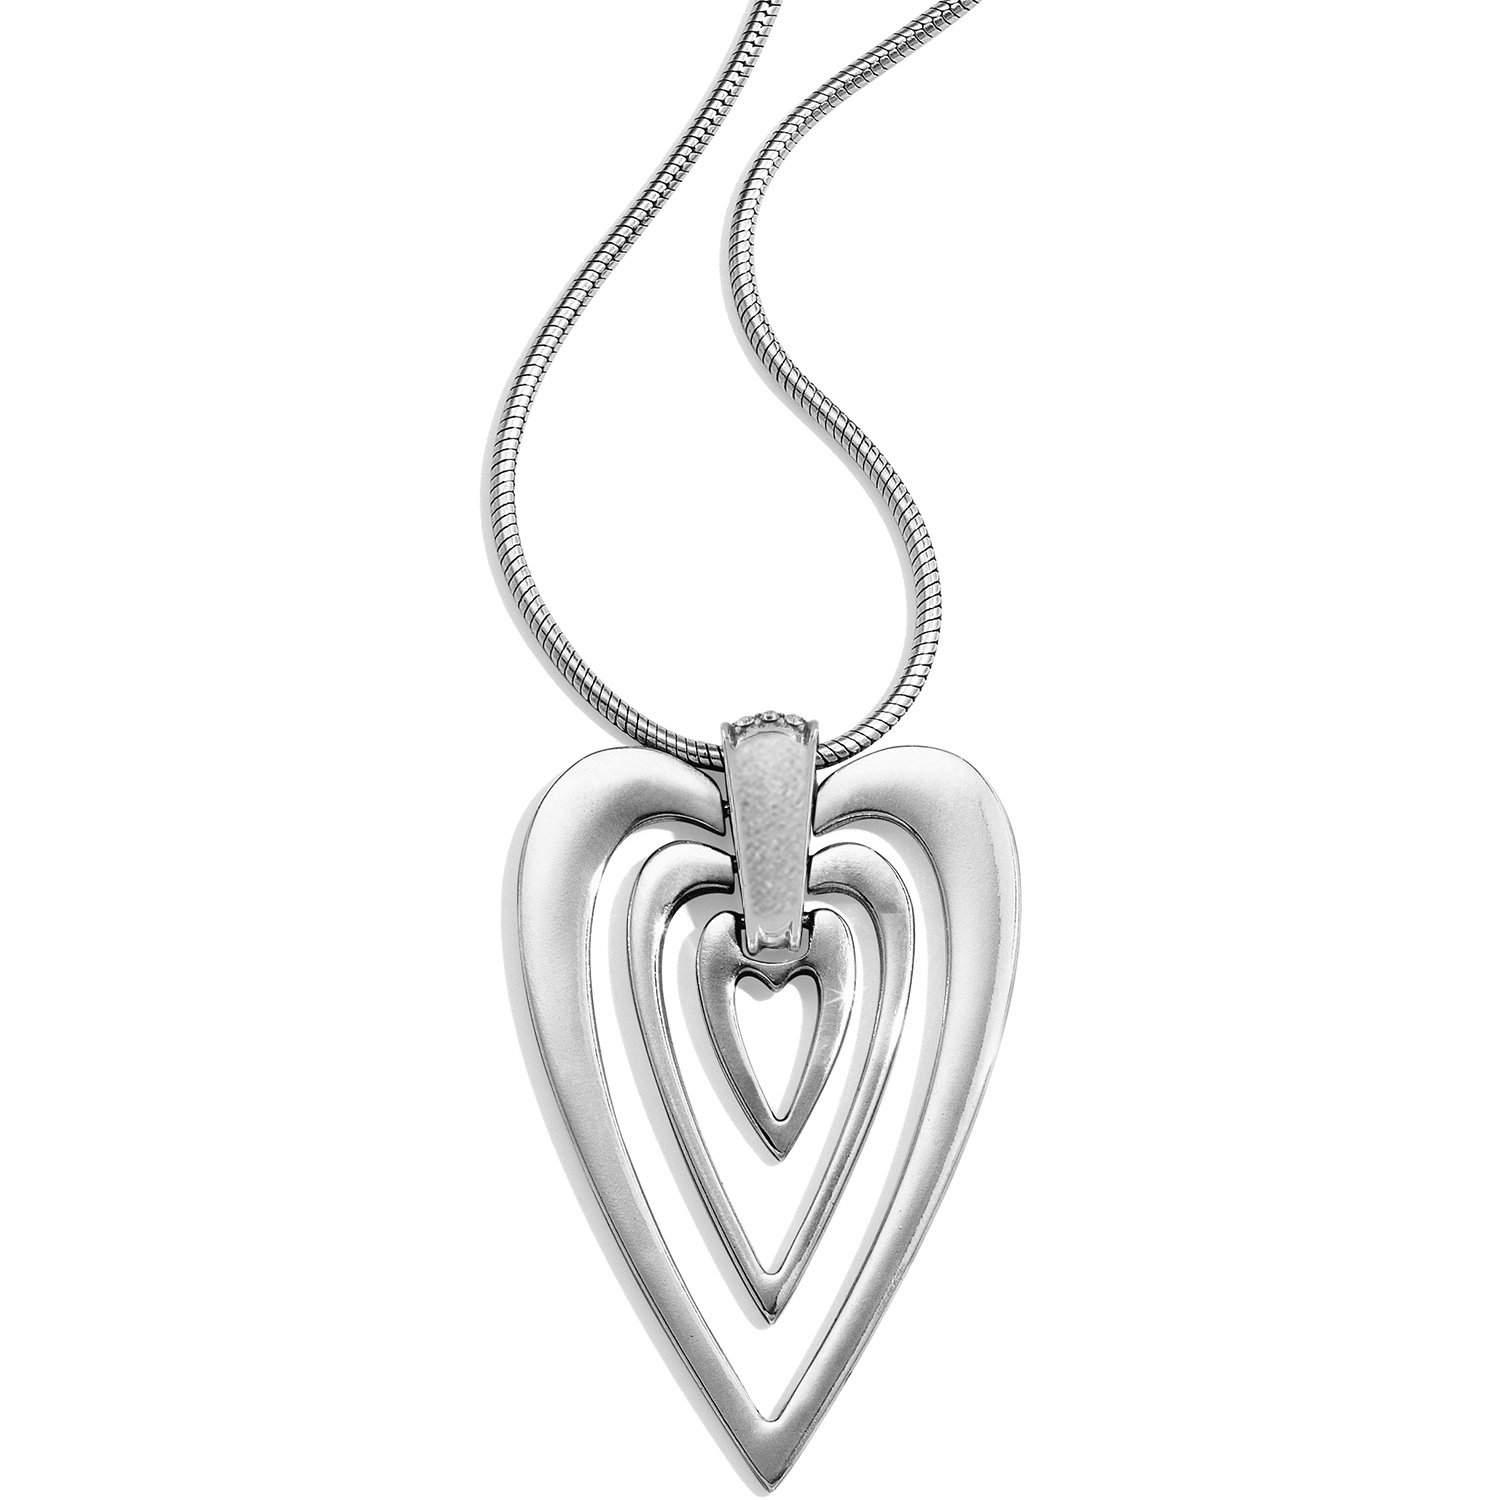 Meridian Swing Hearts Necklace With Most Recent Joined Hearts Necklaces (View 13 of 25)